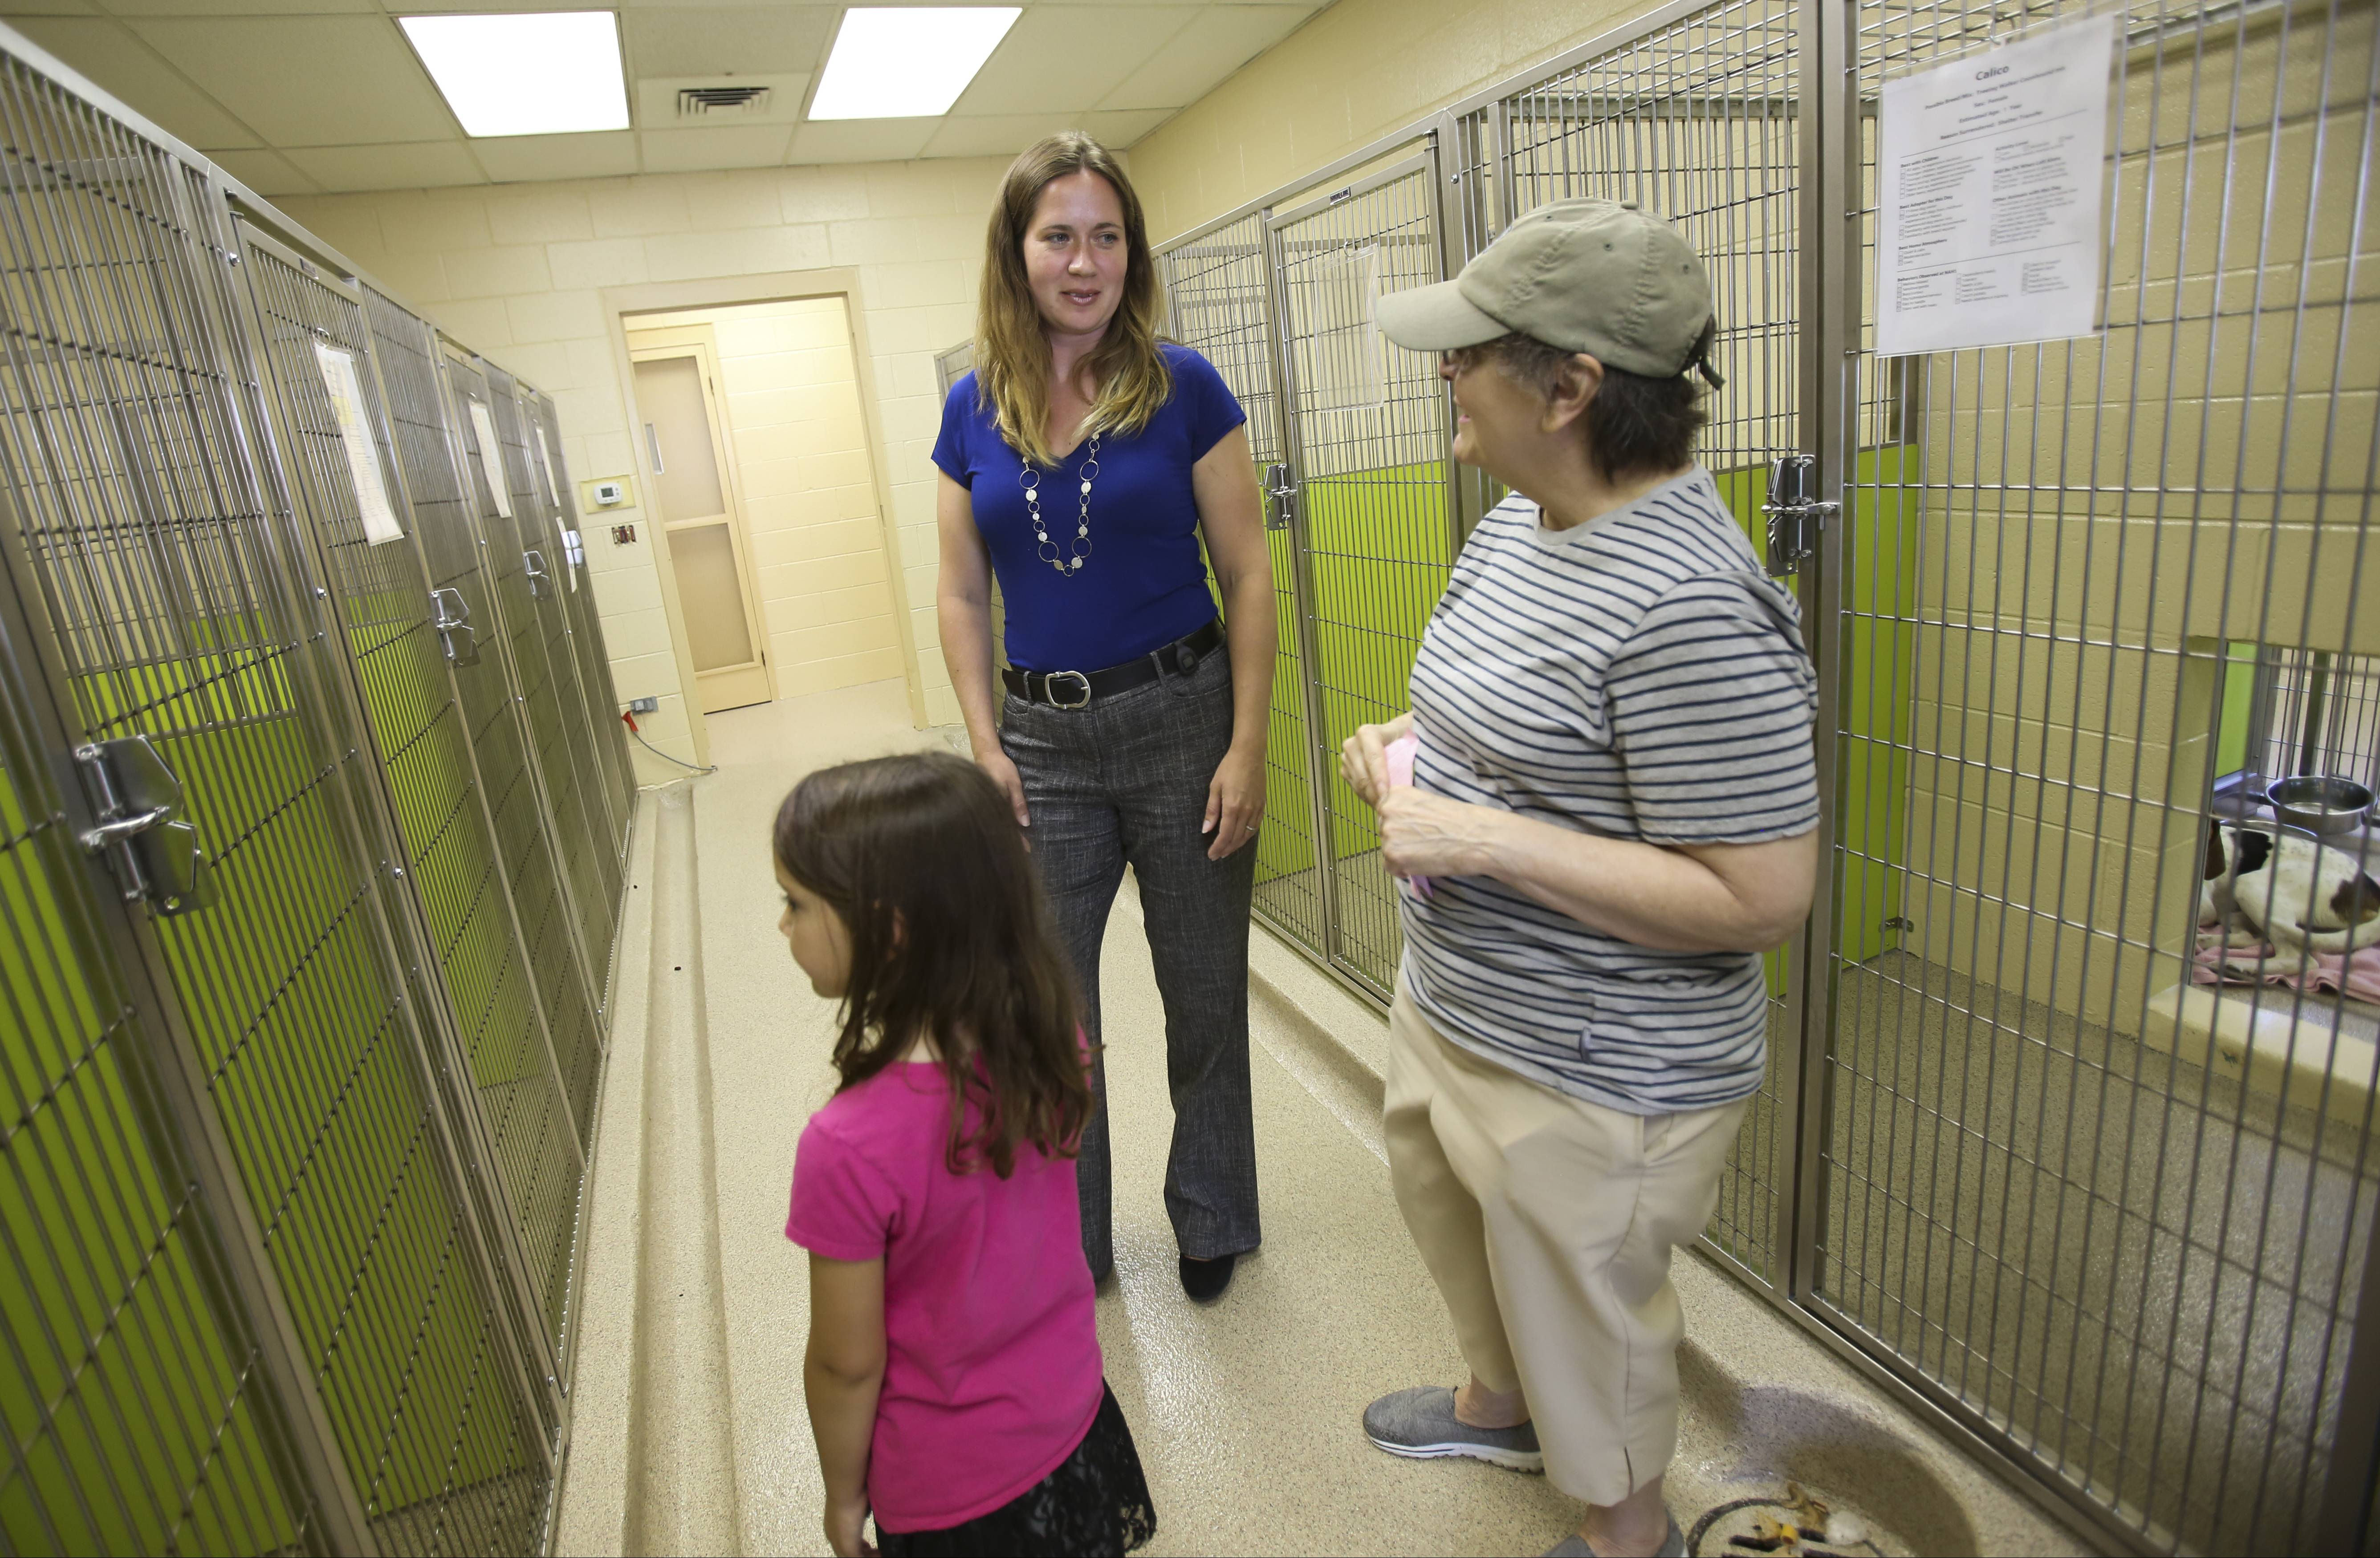 Anna Payton, who took over as executive director of the Naperville Area Humane Society in May, chats with Daniella Walczak and her 6-year-old granddaughter Karissa, who were looking at dogs to adopt from the shelter.